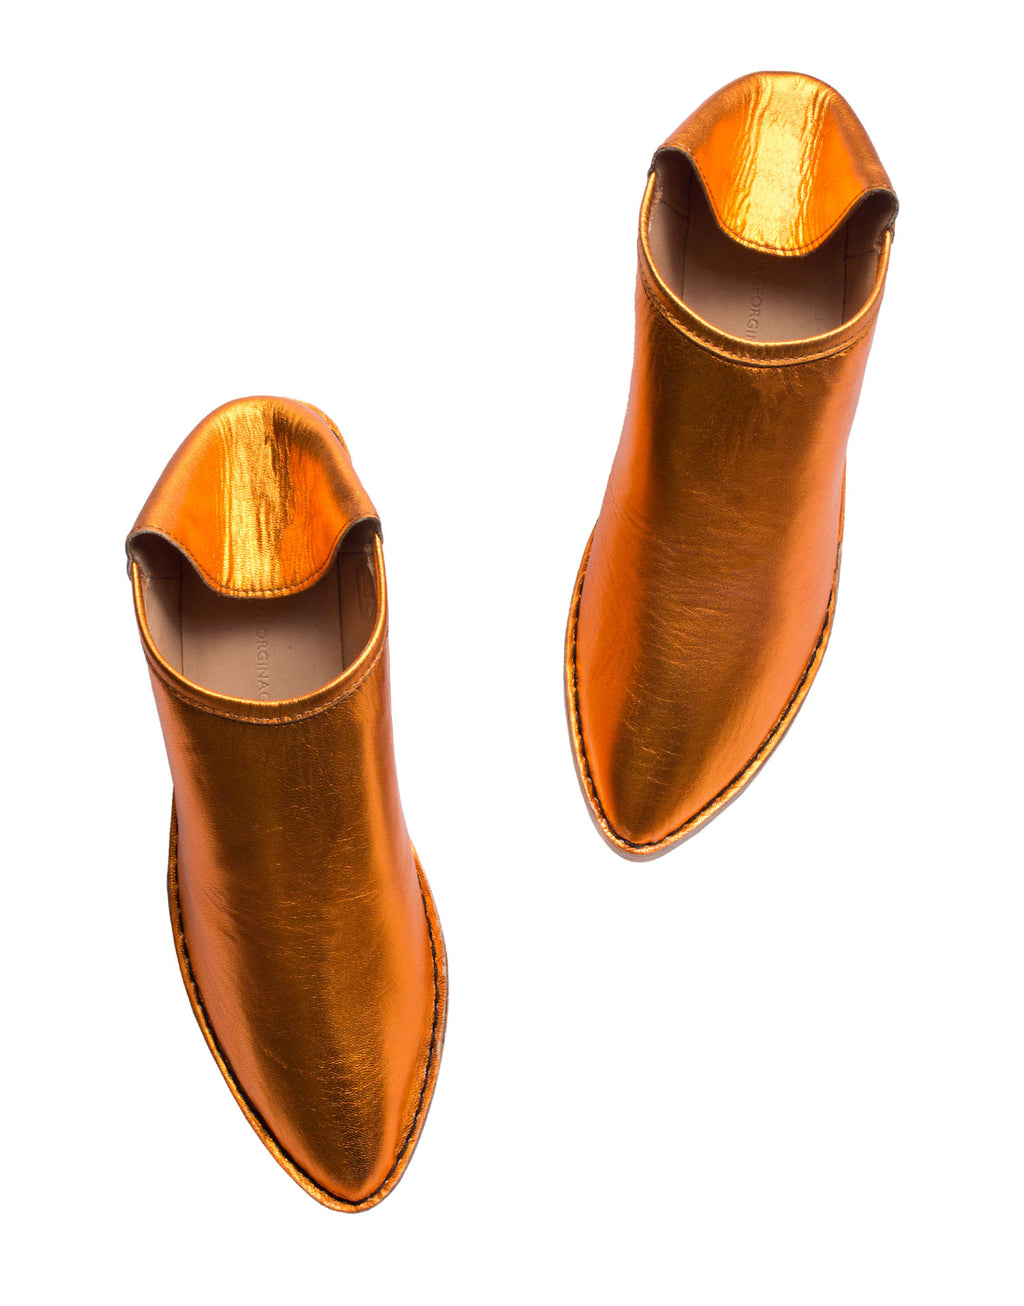 Orange metallic babouche by designer Georgina Goodman with internal wedge and leather sole with non slip rubber insert. The outdoor shoe with an indoor attitude.